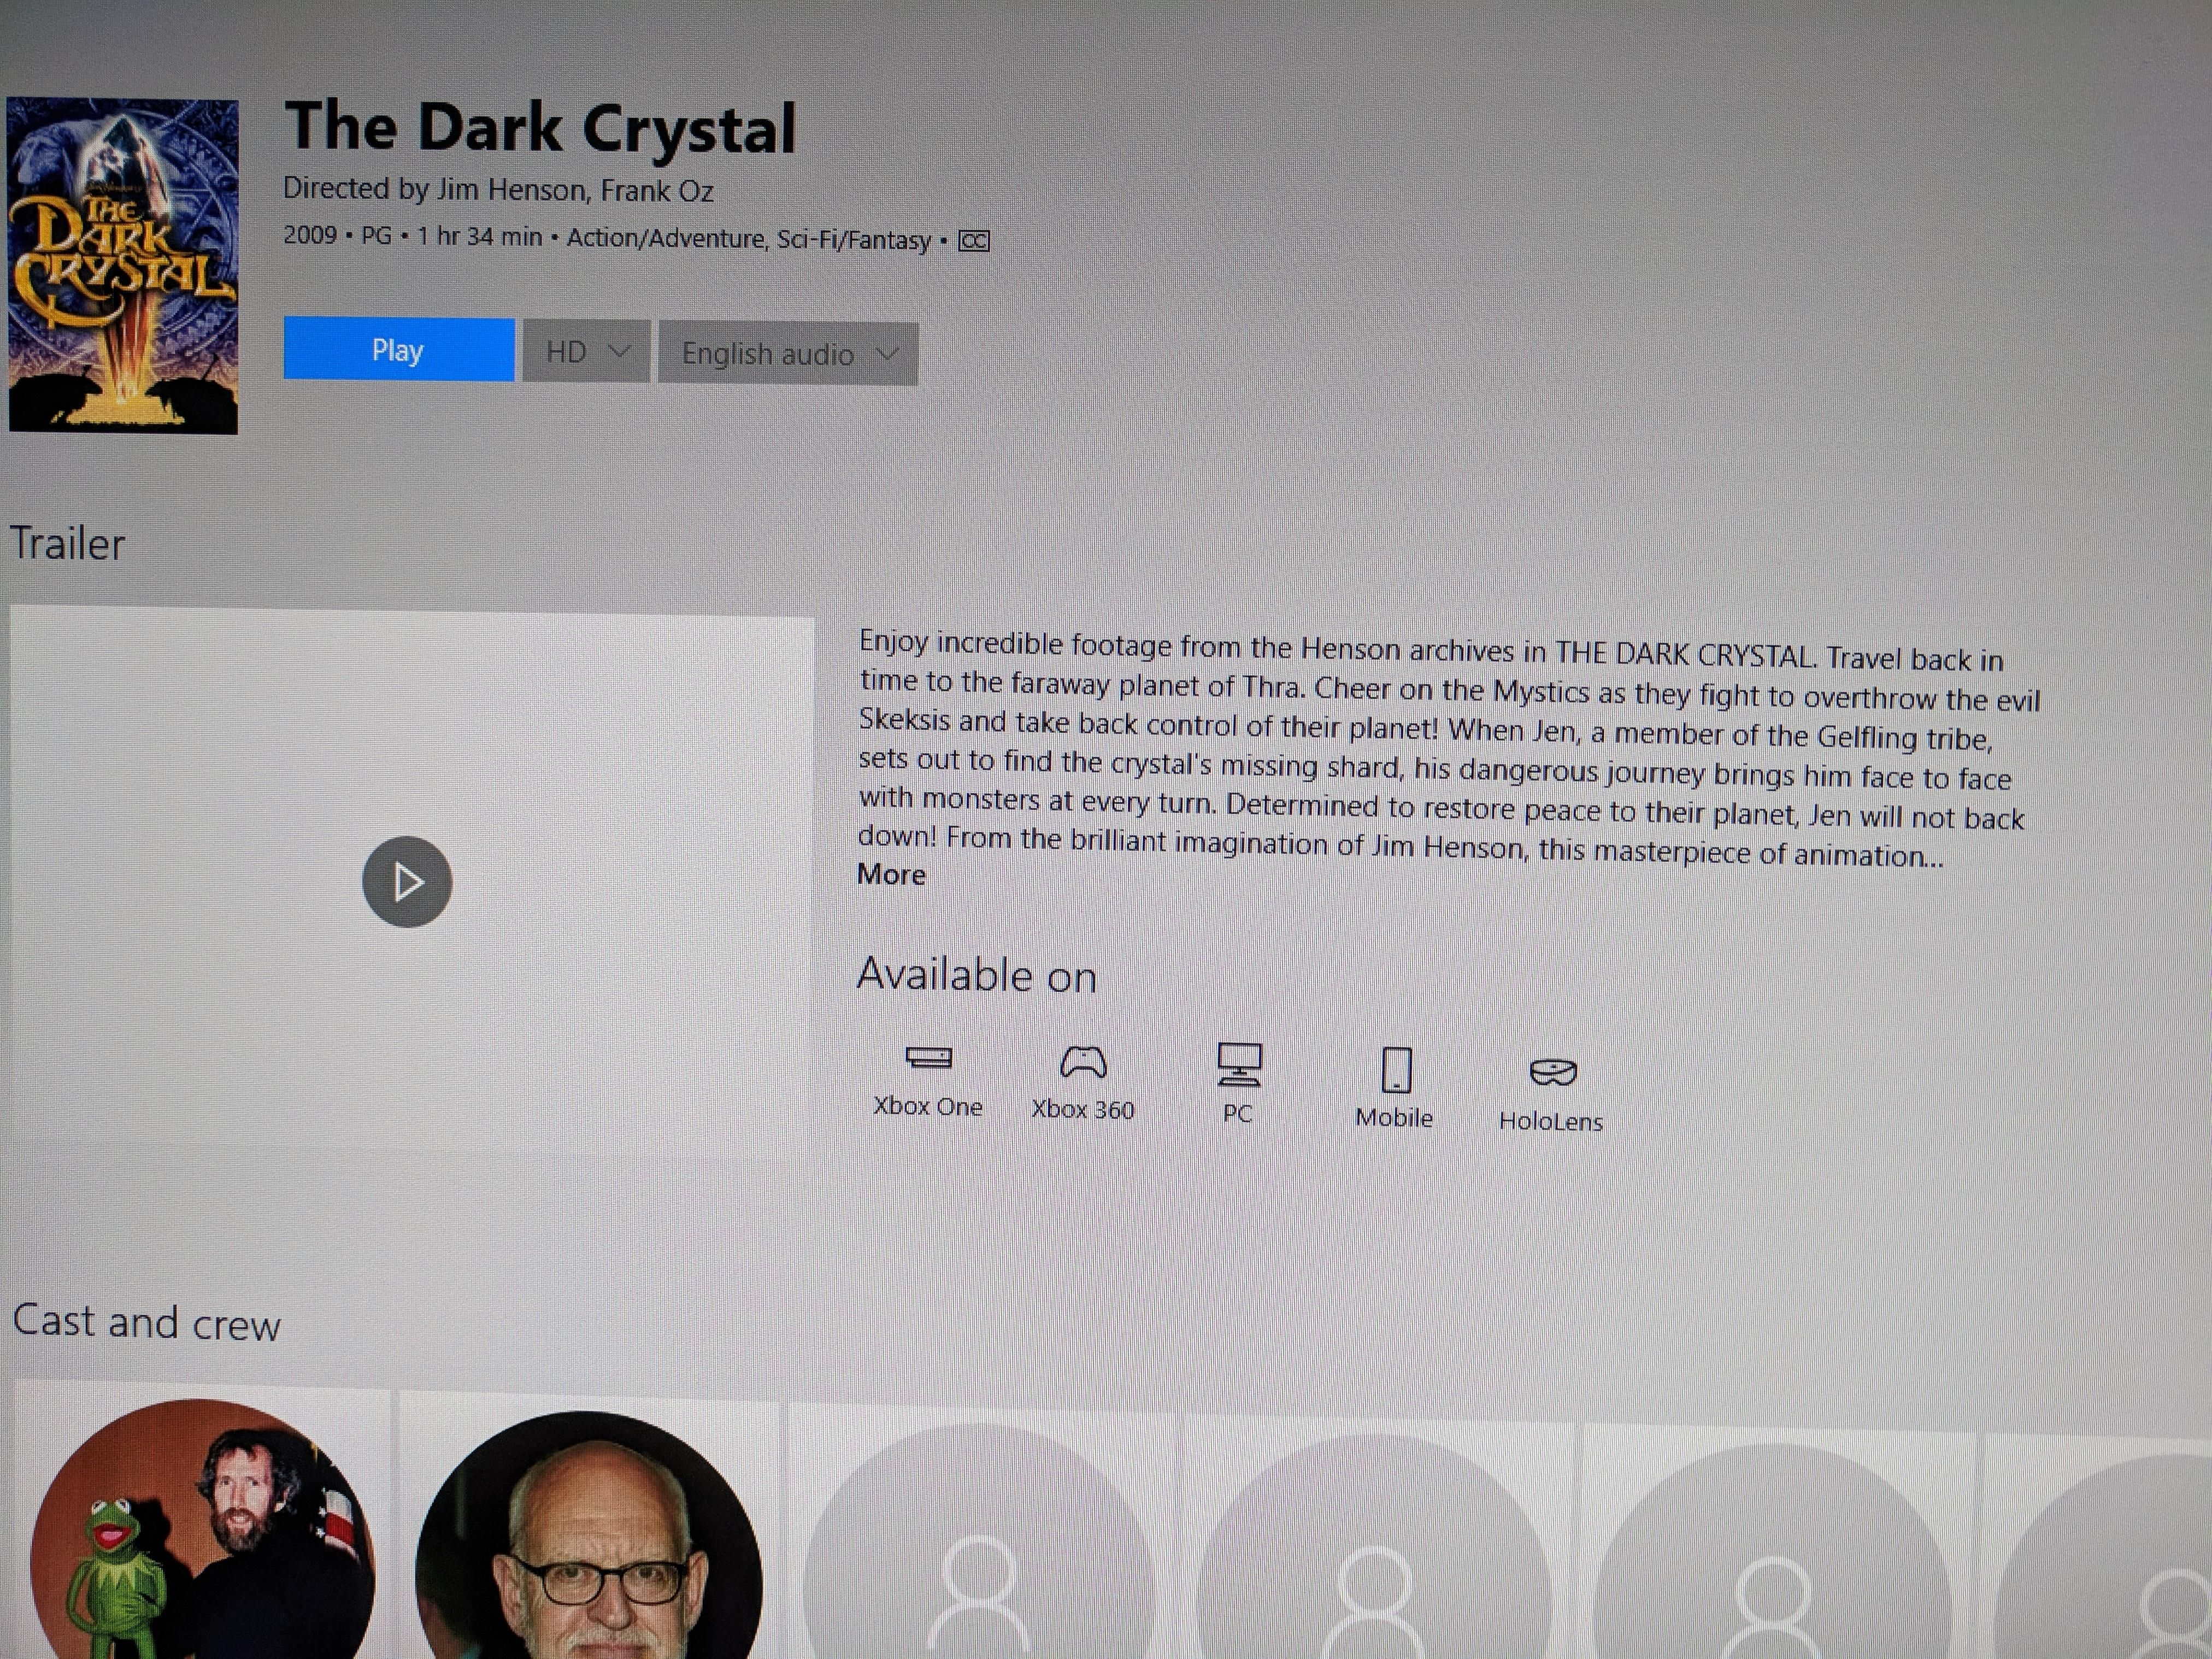 the dark crystal is free to rent today from the microsoft store